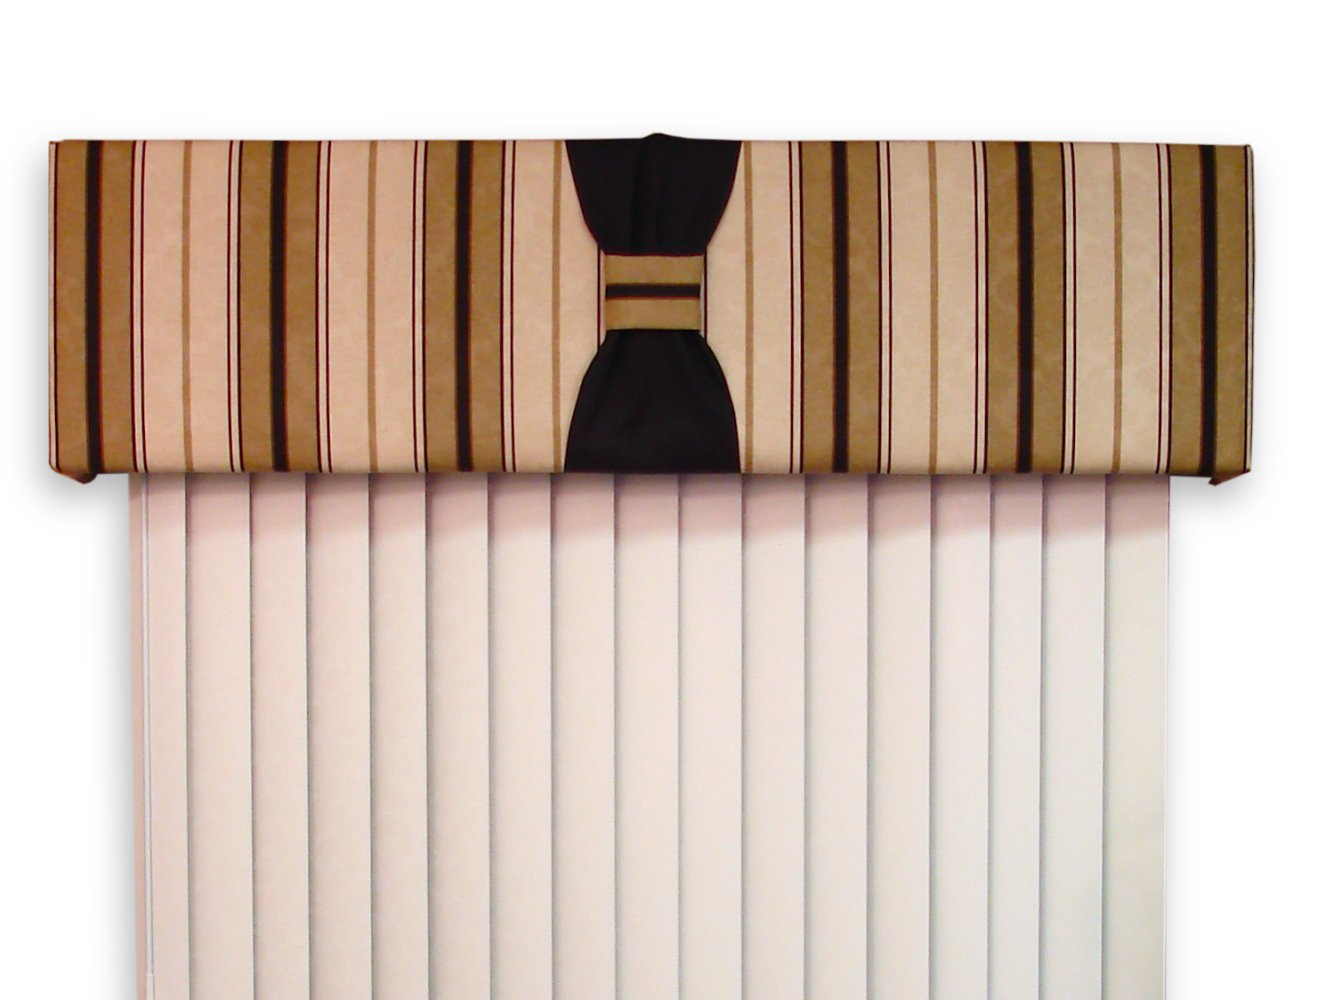 16 inch High by 48 inch Long Cornice Frame Kit. Do-It-Yourself All Wood! by D-I-Y Cornice Frame Kit (Image #1)